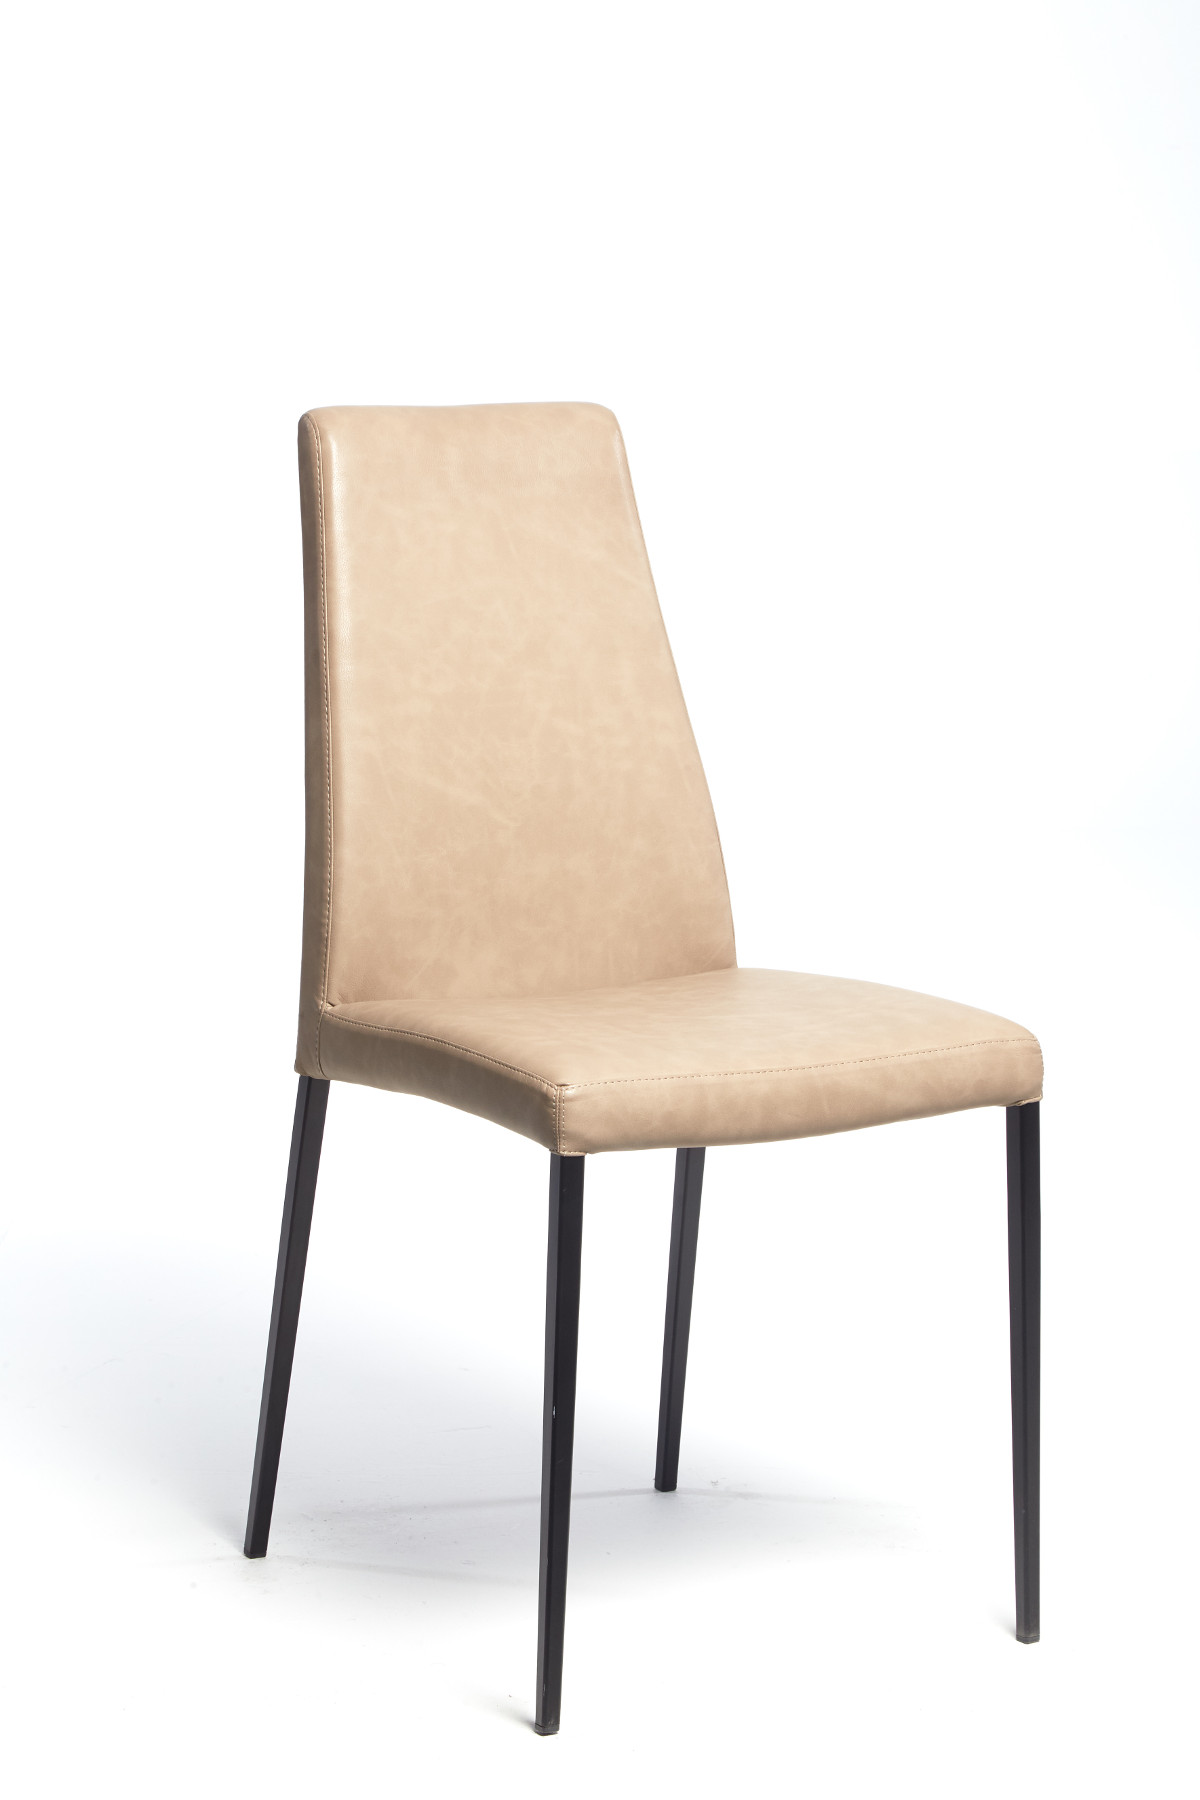 Calligaris Aida Soft Chair Vintage Desert